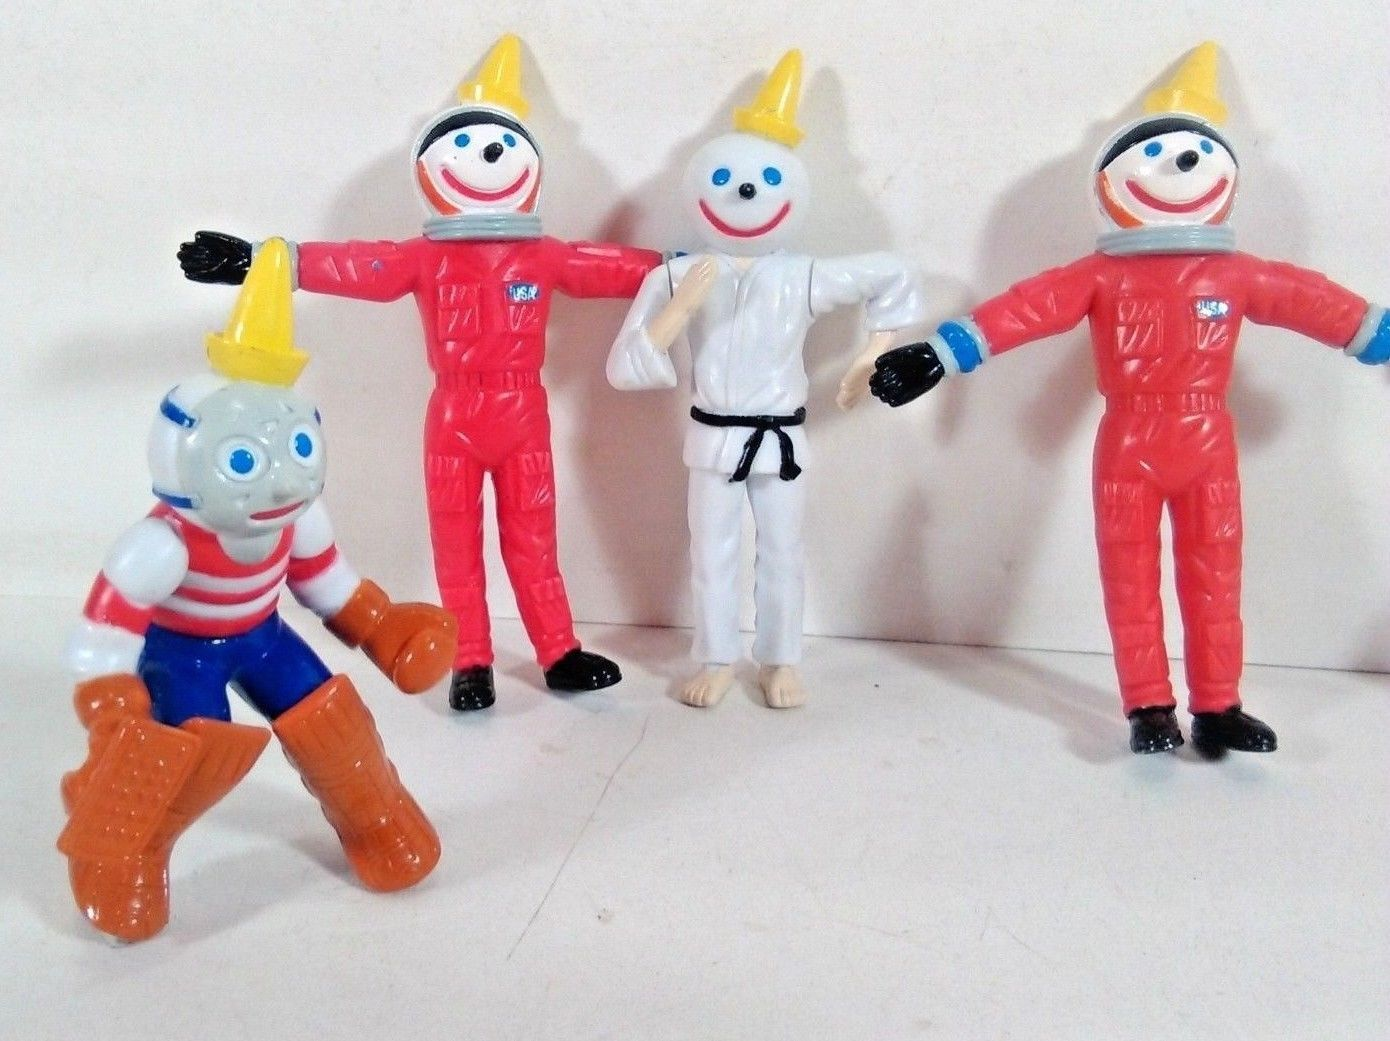 Lot of 5 Jack in the Box Bendable Jack Figurine Toys Vintage